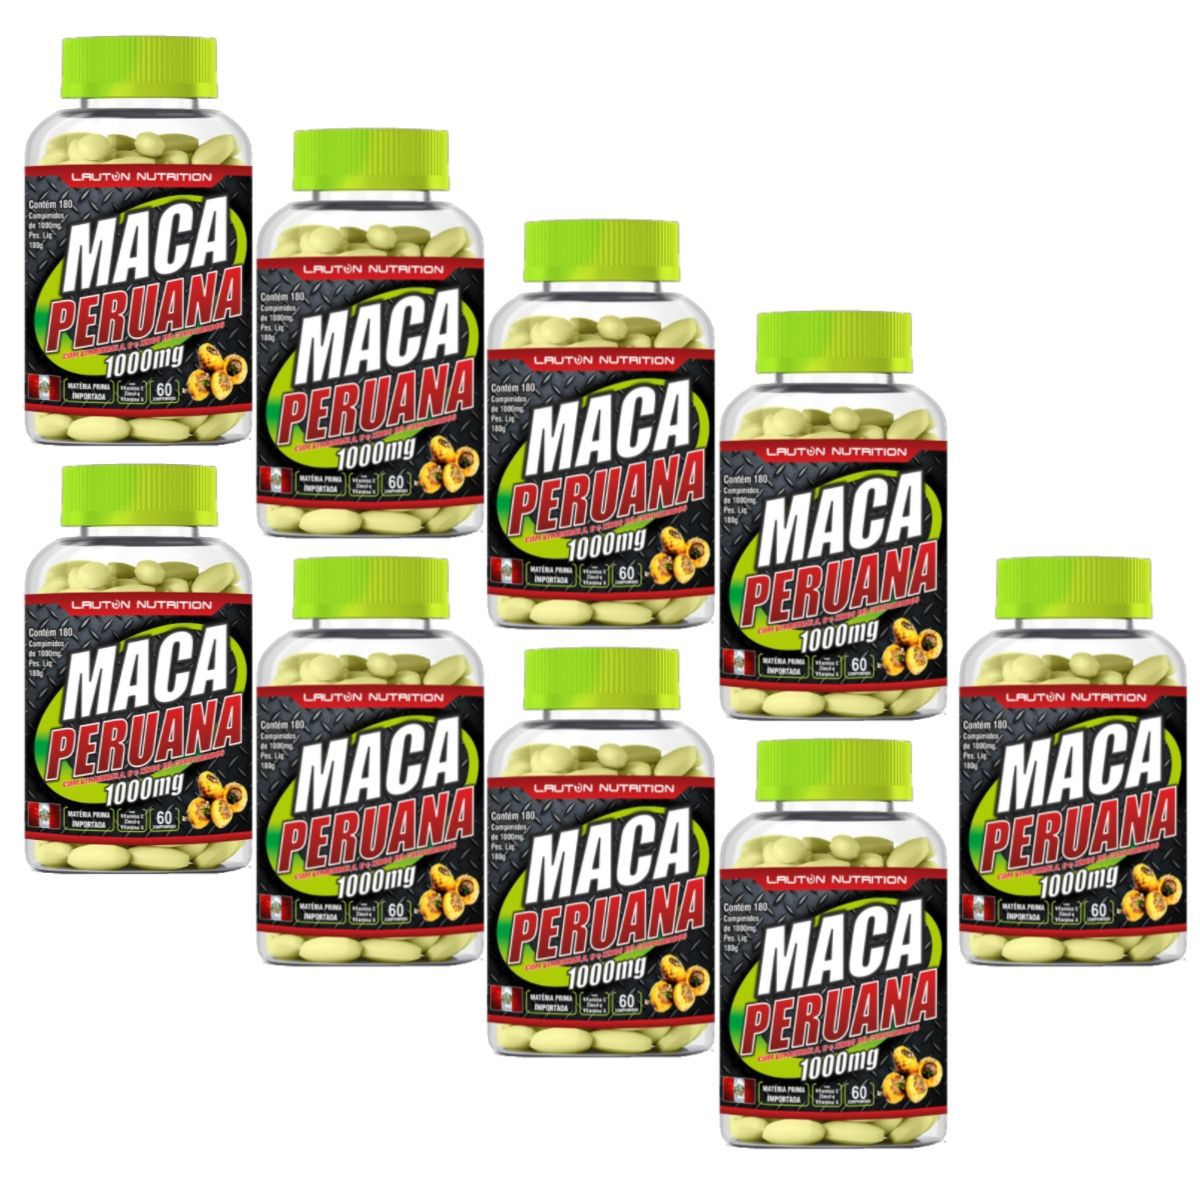 Kit 9 Maca Peruana 60 Tabs 1000mg Lauton Nutrition